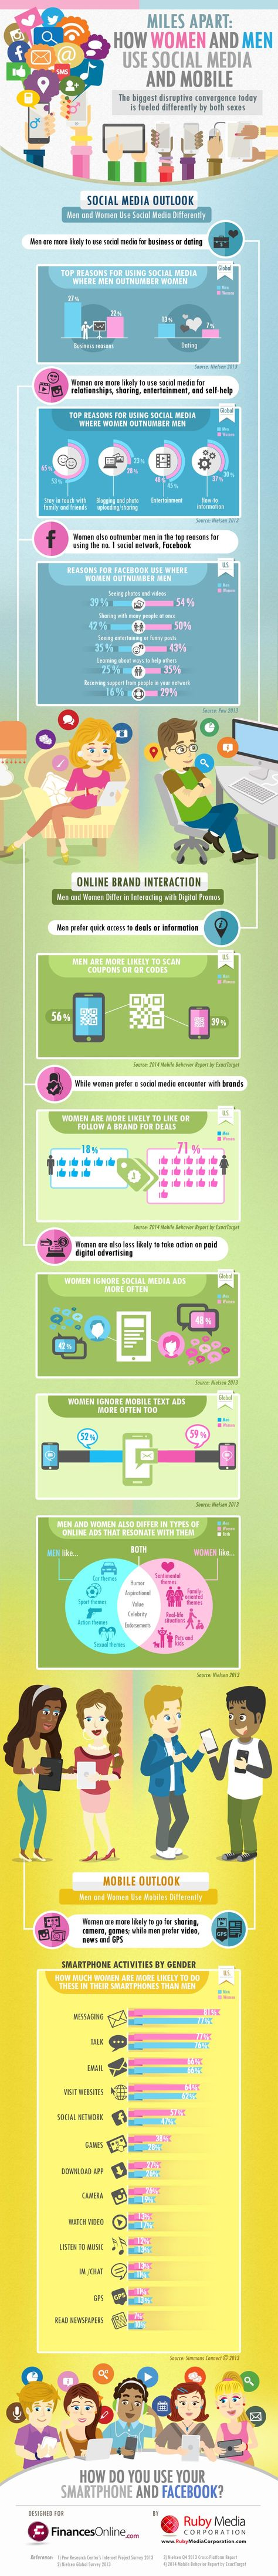 How Men And Women Use Social Media And Mobile (And What This Means For Ads) [INFOGRAPHIC]